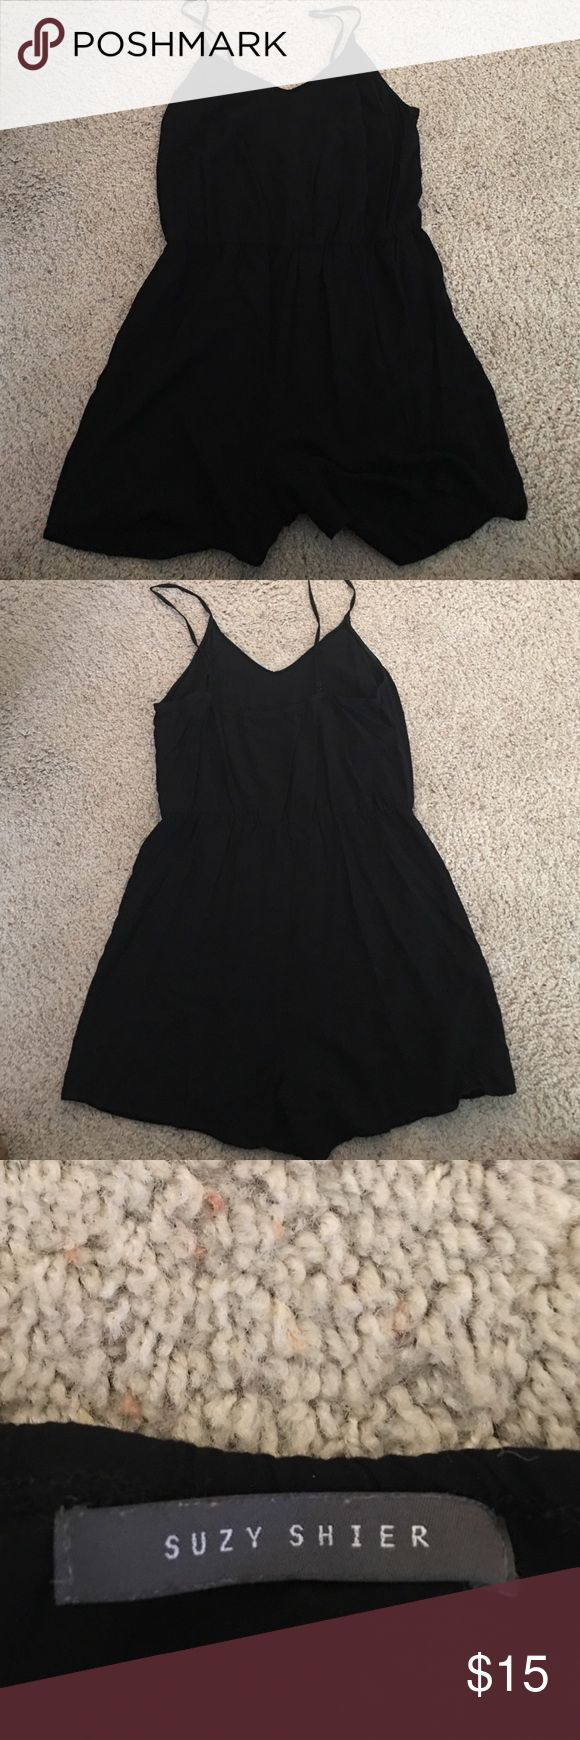 Women's Black Romper Women's Black tank Romper. Synched at the waist. Adjustable straps. Size L Suzy Shier Pants Jumpsuits & Rompers